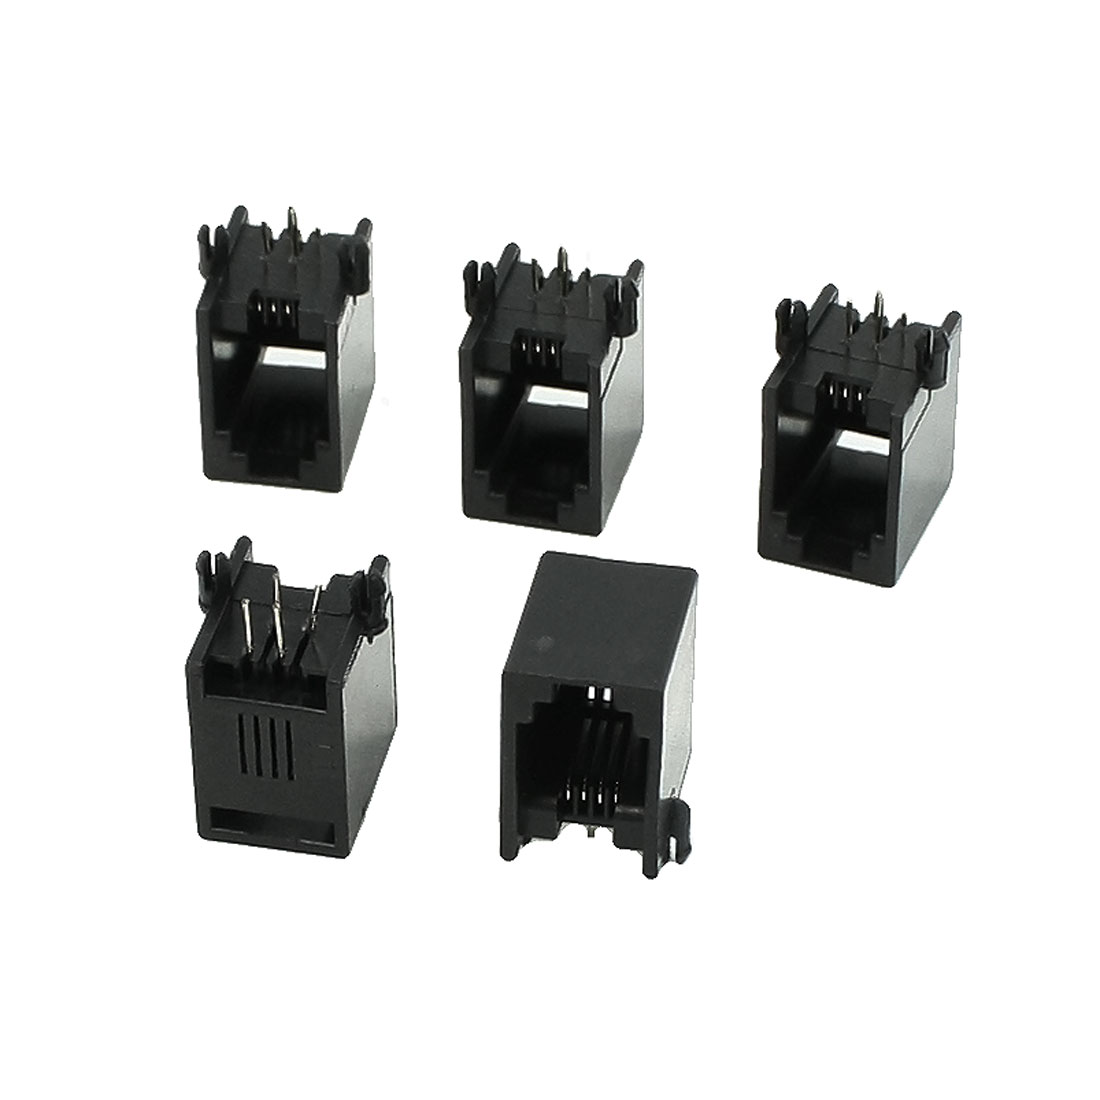 5 Pcs RJ9 RJ10 RJ22 4P4C Handset Sockets Jacks 13 x 9.5 x 14mm